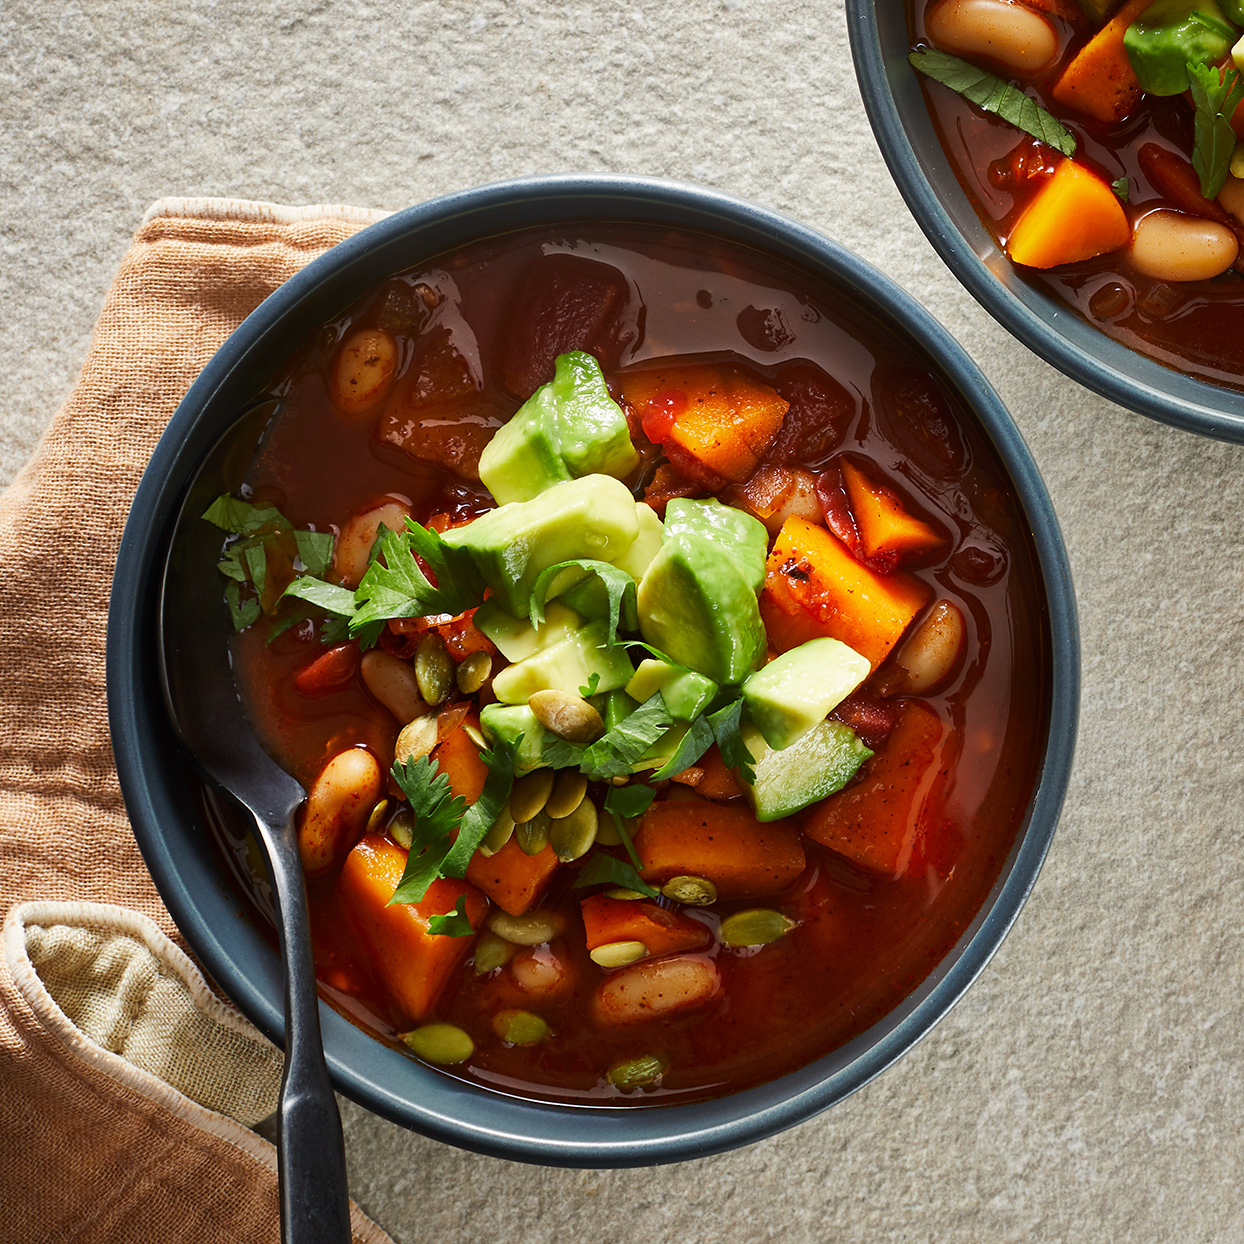 For a quick-cooking soup, this one-pot, high-fiber vegetarian chili is deeply flavorful—so much so that tasters couldn't believe it was meat-free! We add a little flour and cook the stew with the lid off to thicken the chili and give it a hearty texture.